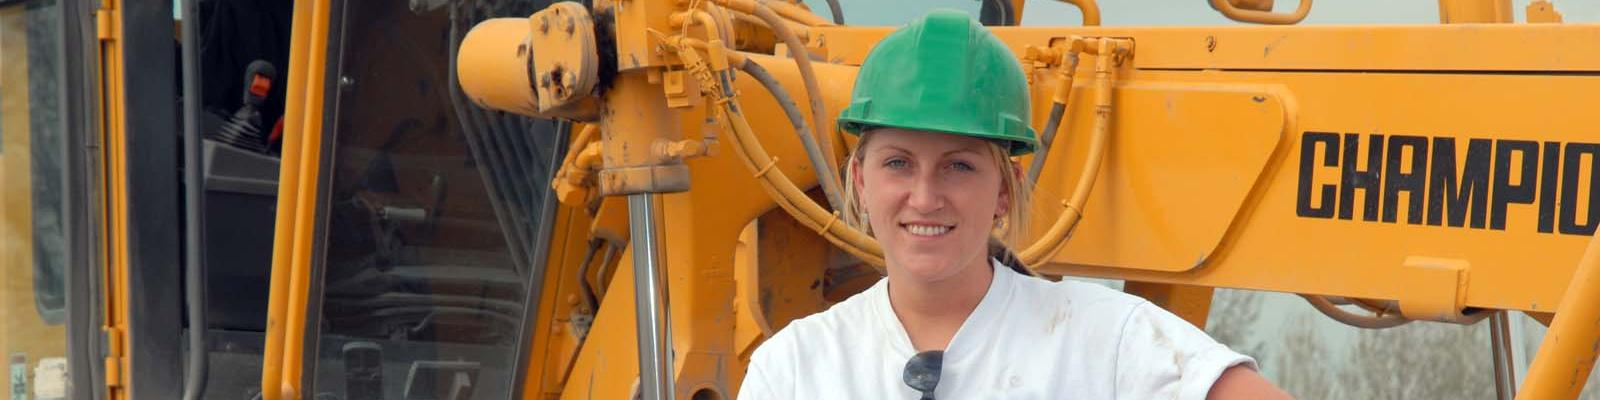 Woman heavy equipment operator construction worker